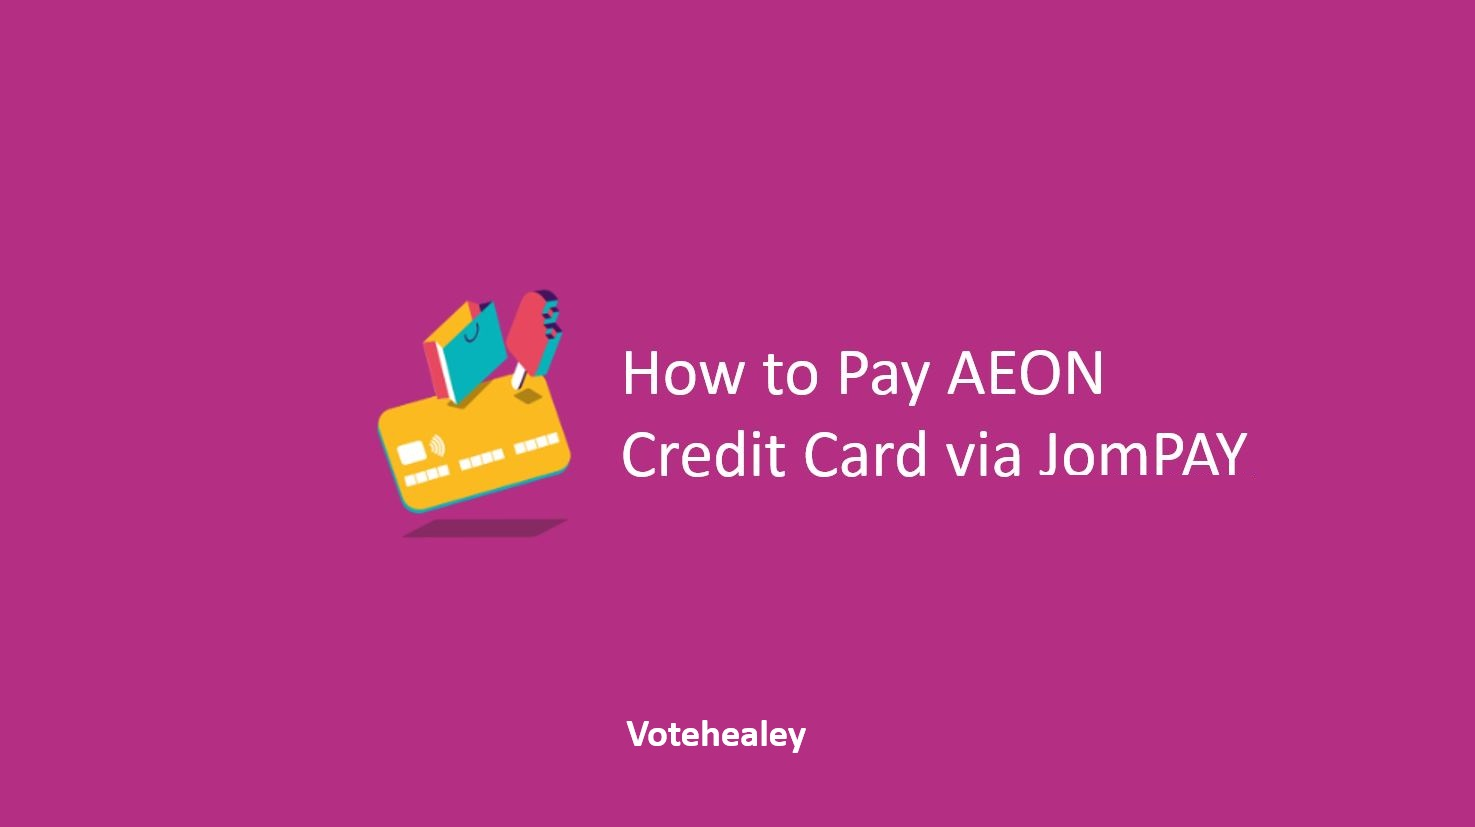 How to Pay AEON Credit Card via JomPAY